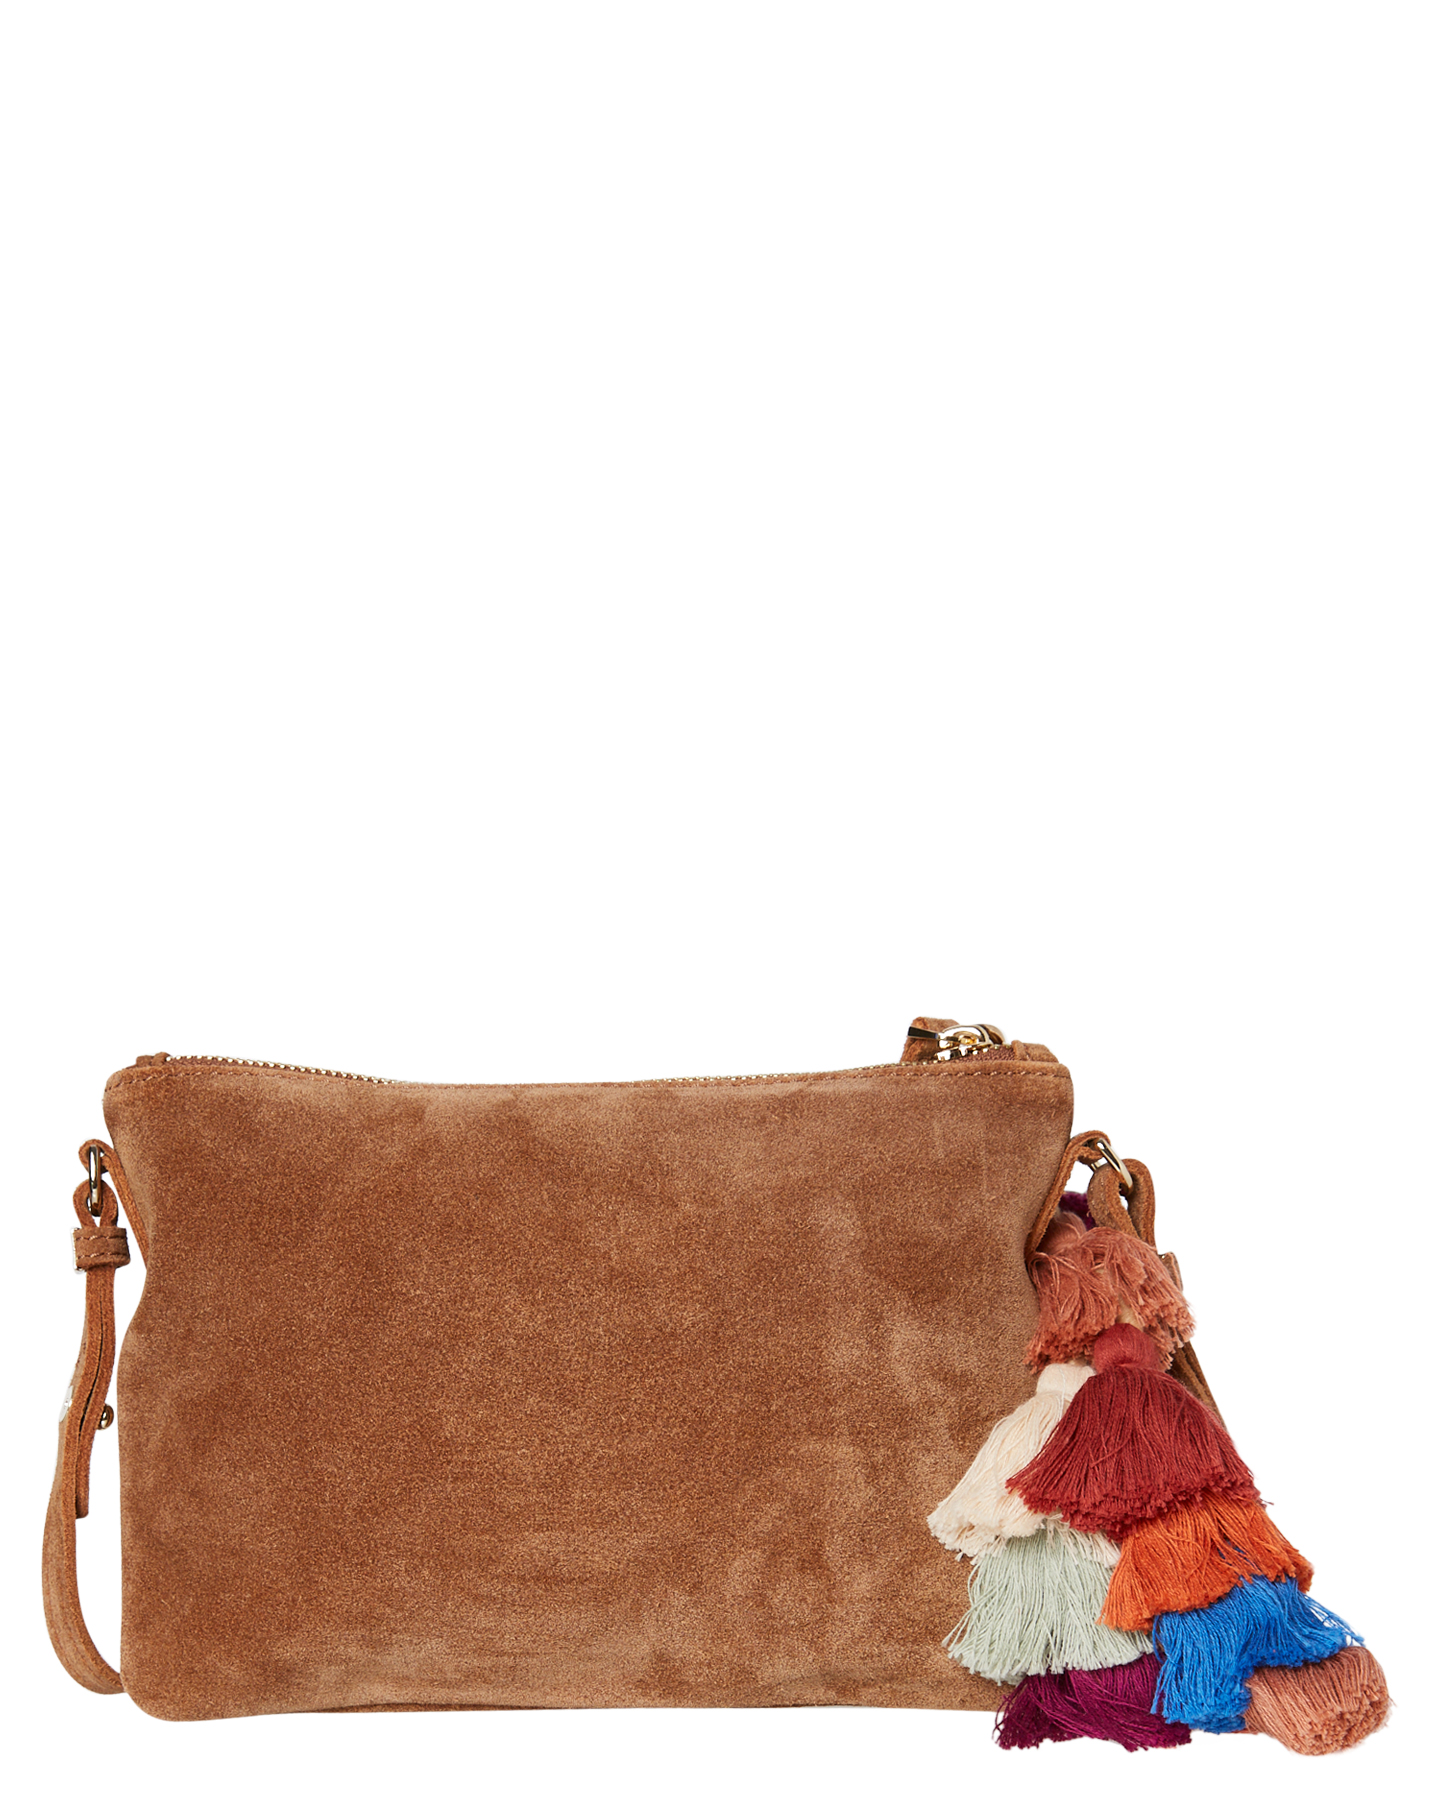 New-The-Wolf-Gang-Women-039-s-Rio-Cross-Body-Bag-Suede-Canvas-Pink thumbnail 13